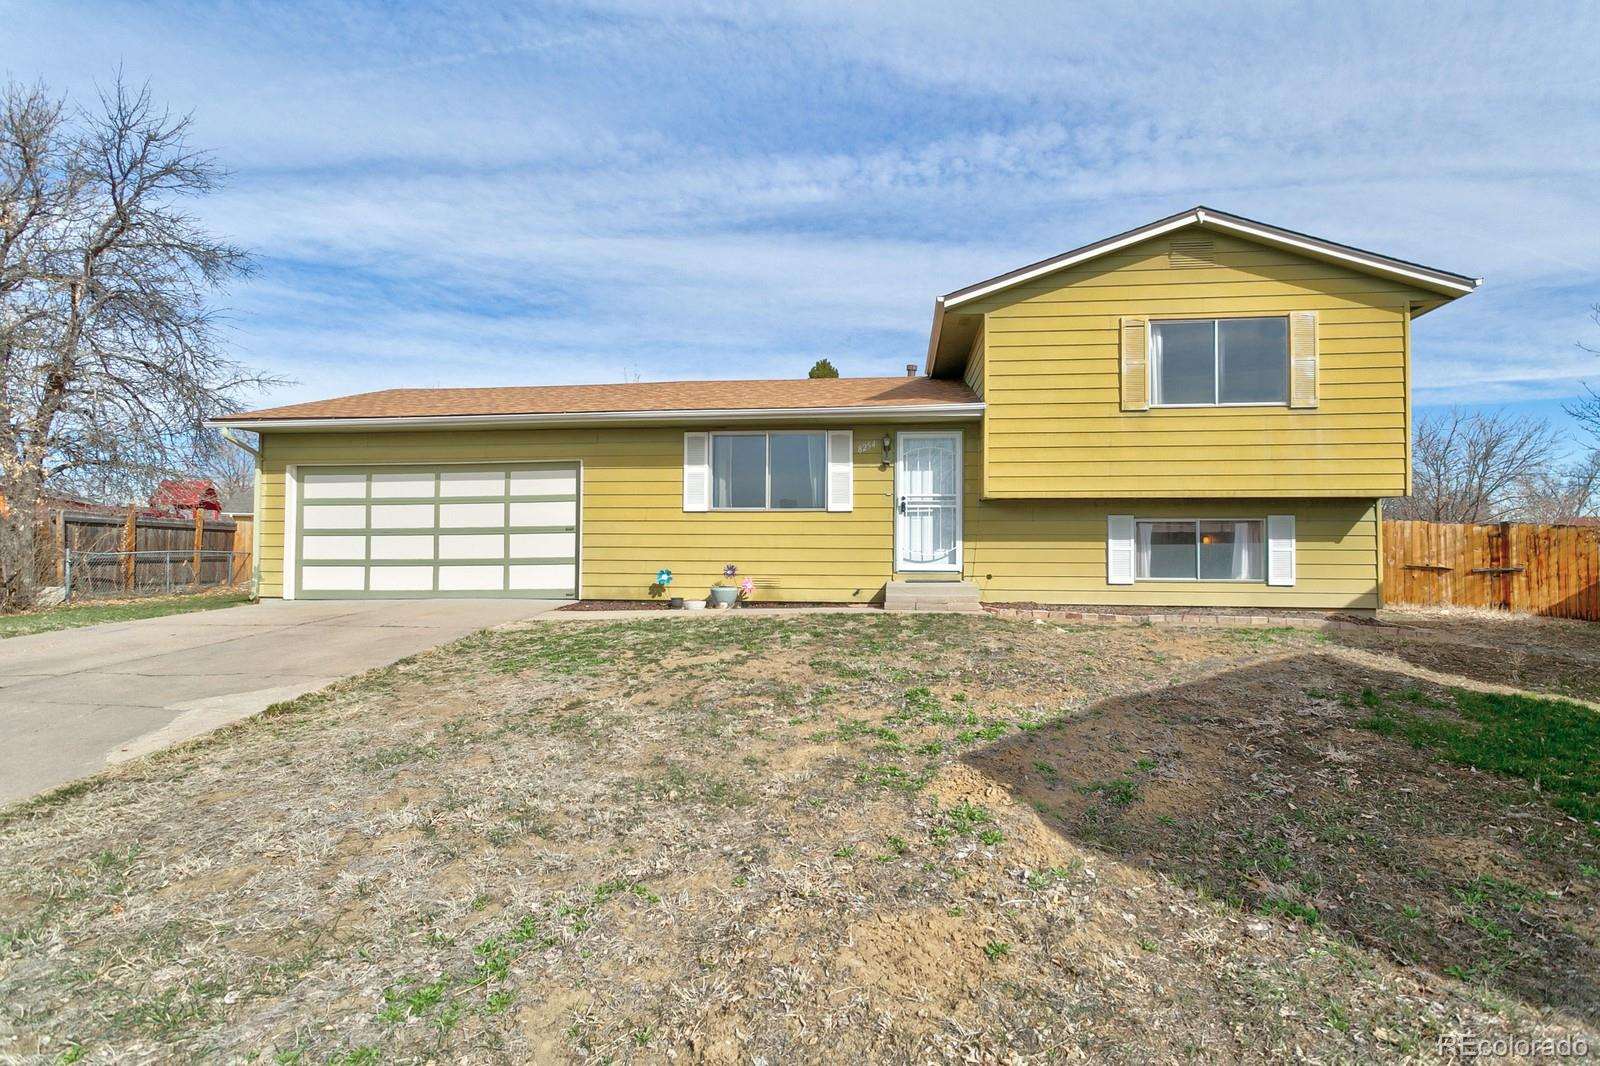 MLS# 8938465 - 1 - 8254 Ladean Street, Thornton, CO 80229